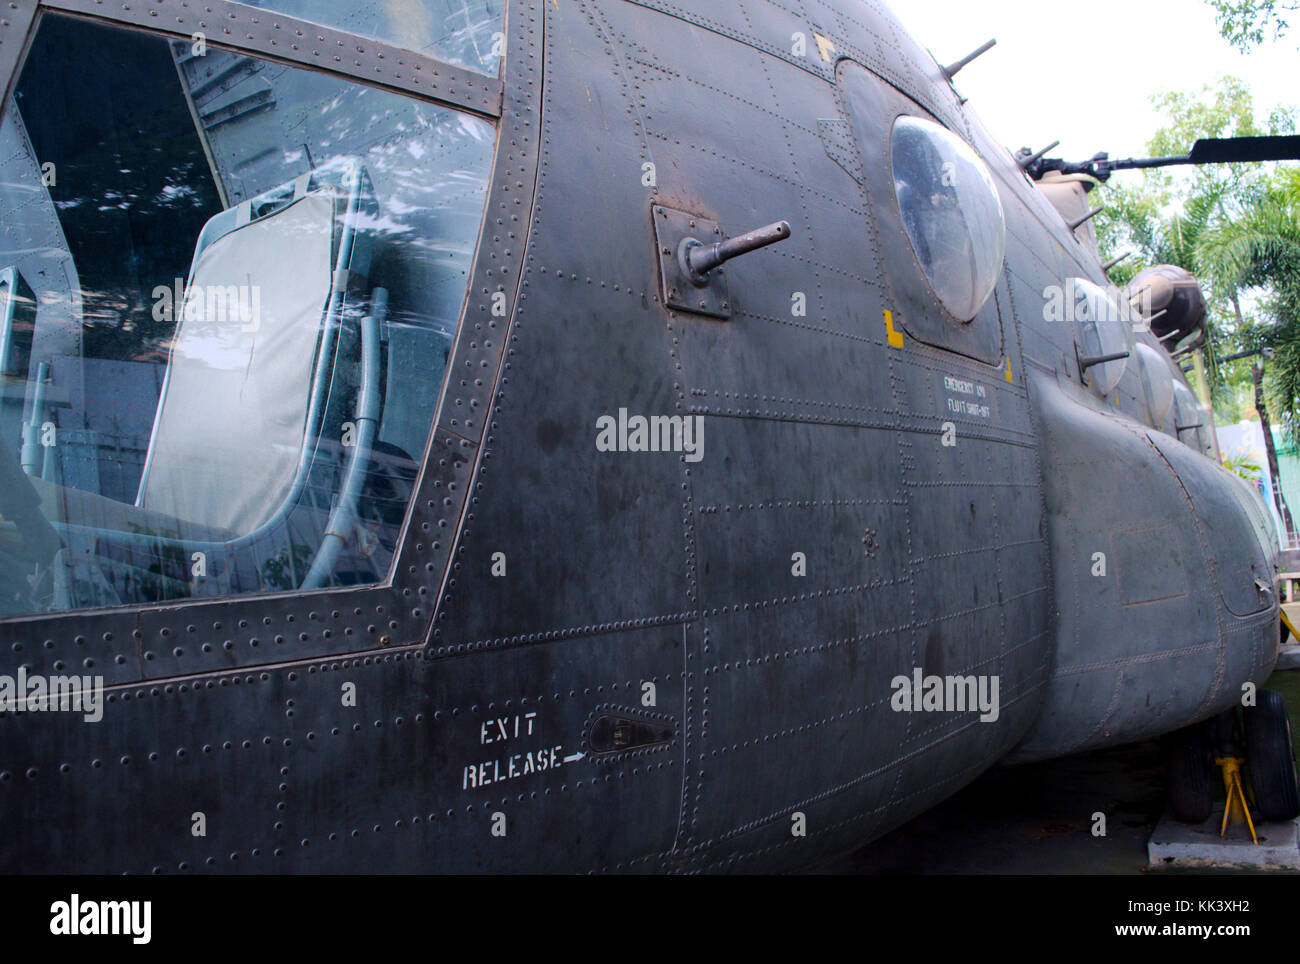 Helicopter fuselage - Stock Image